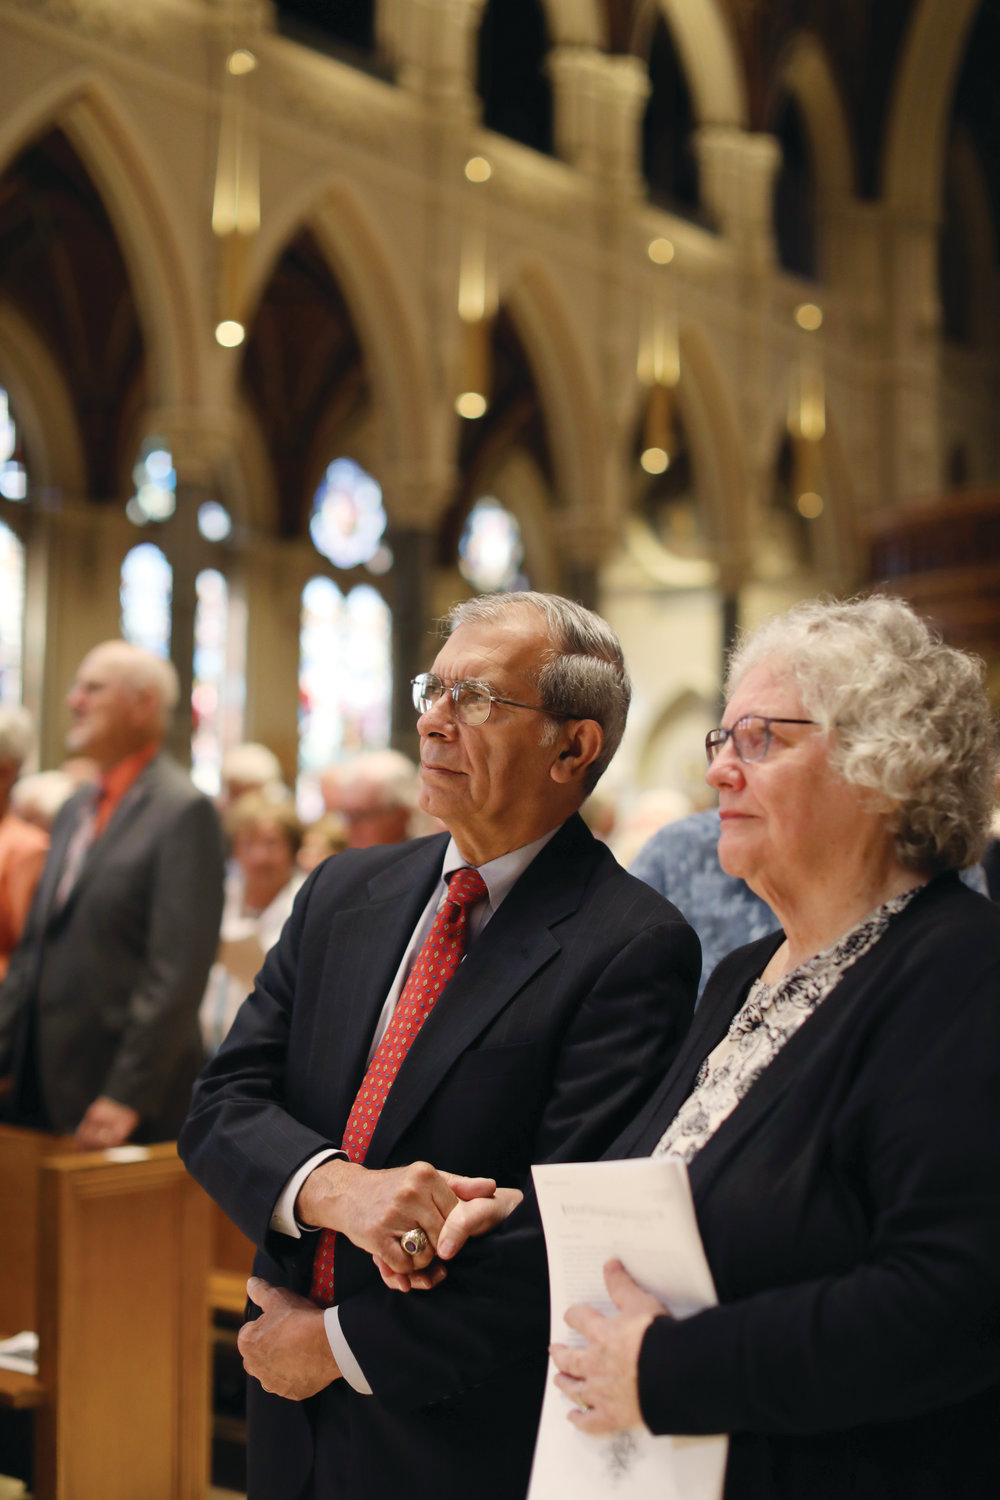 Hundreds of couples gathered on Sunday, Sept. 15 at the Cathedral of SS. Peter and Paul to renew their wedding vows.